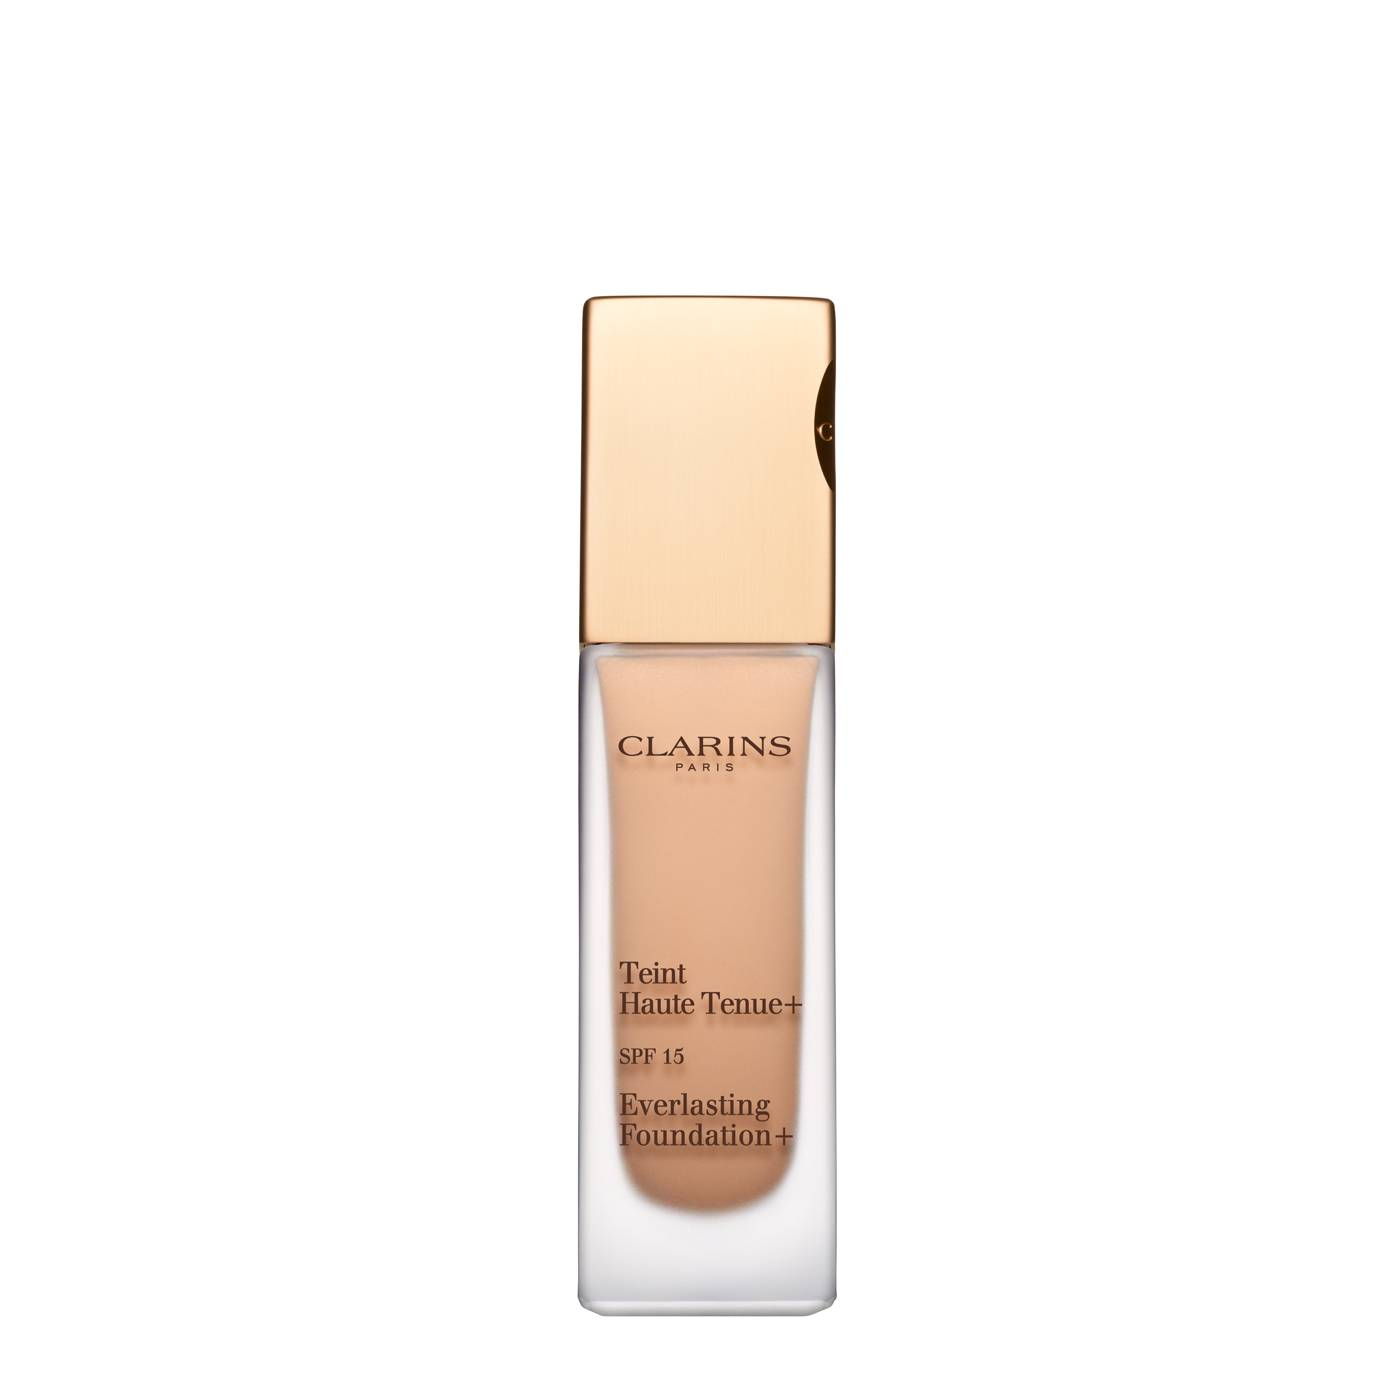 Clarins Everlasting Foundation+ SPF 15 in 102,5 Porcelain 30 ml